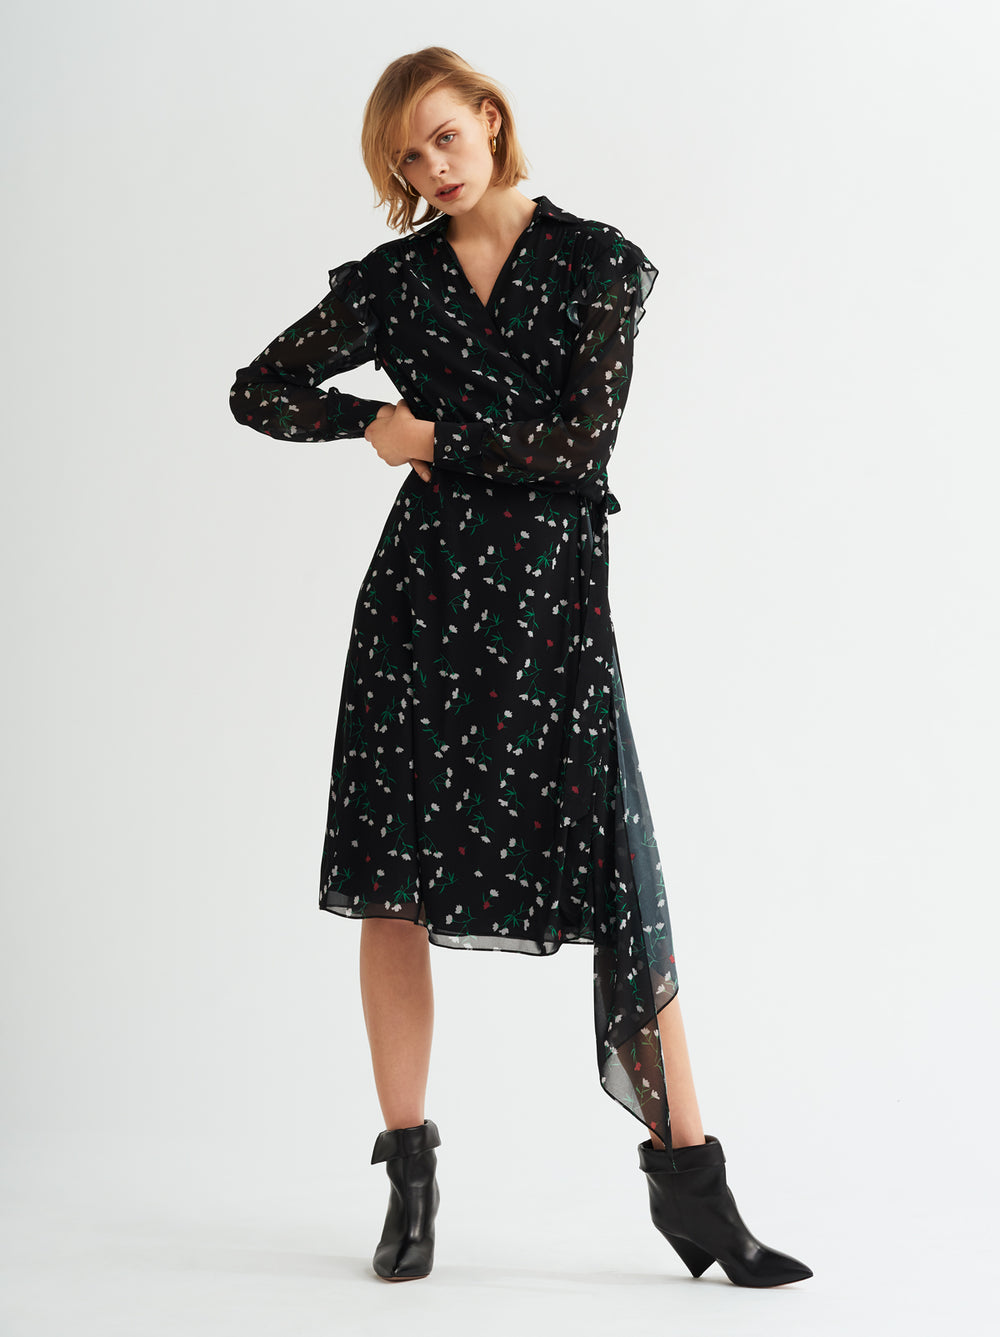 Georgia Black Floral Print Wrap Dress by KITRI Studio